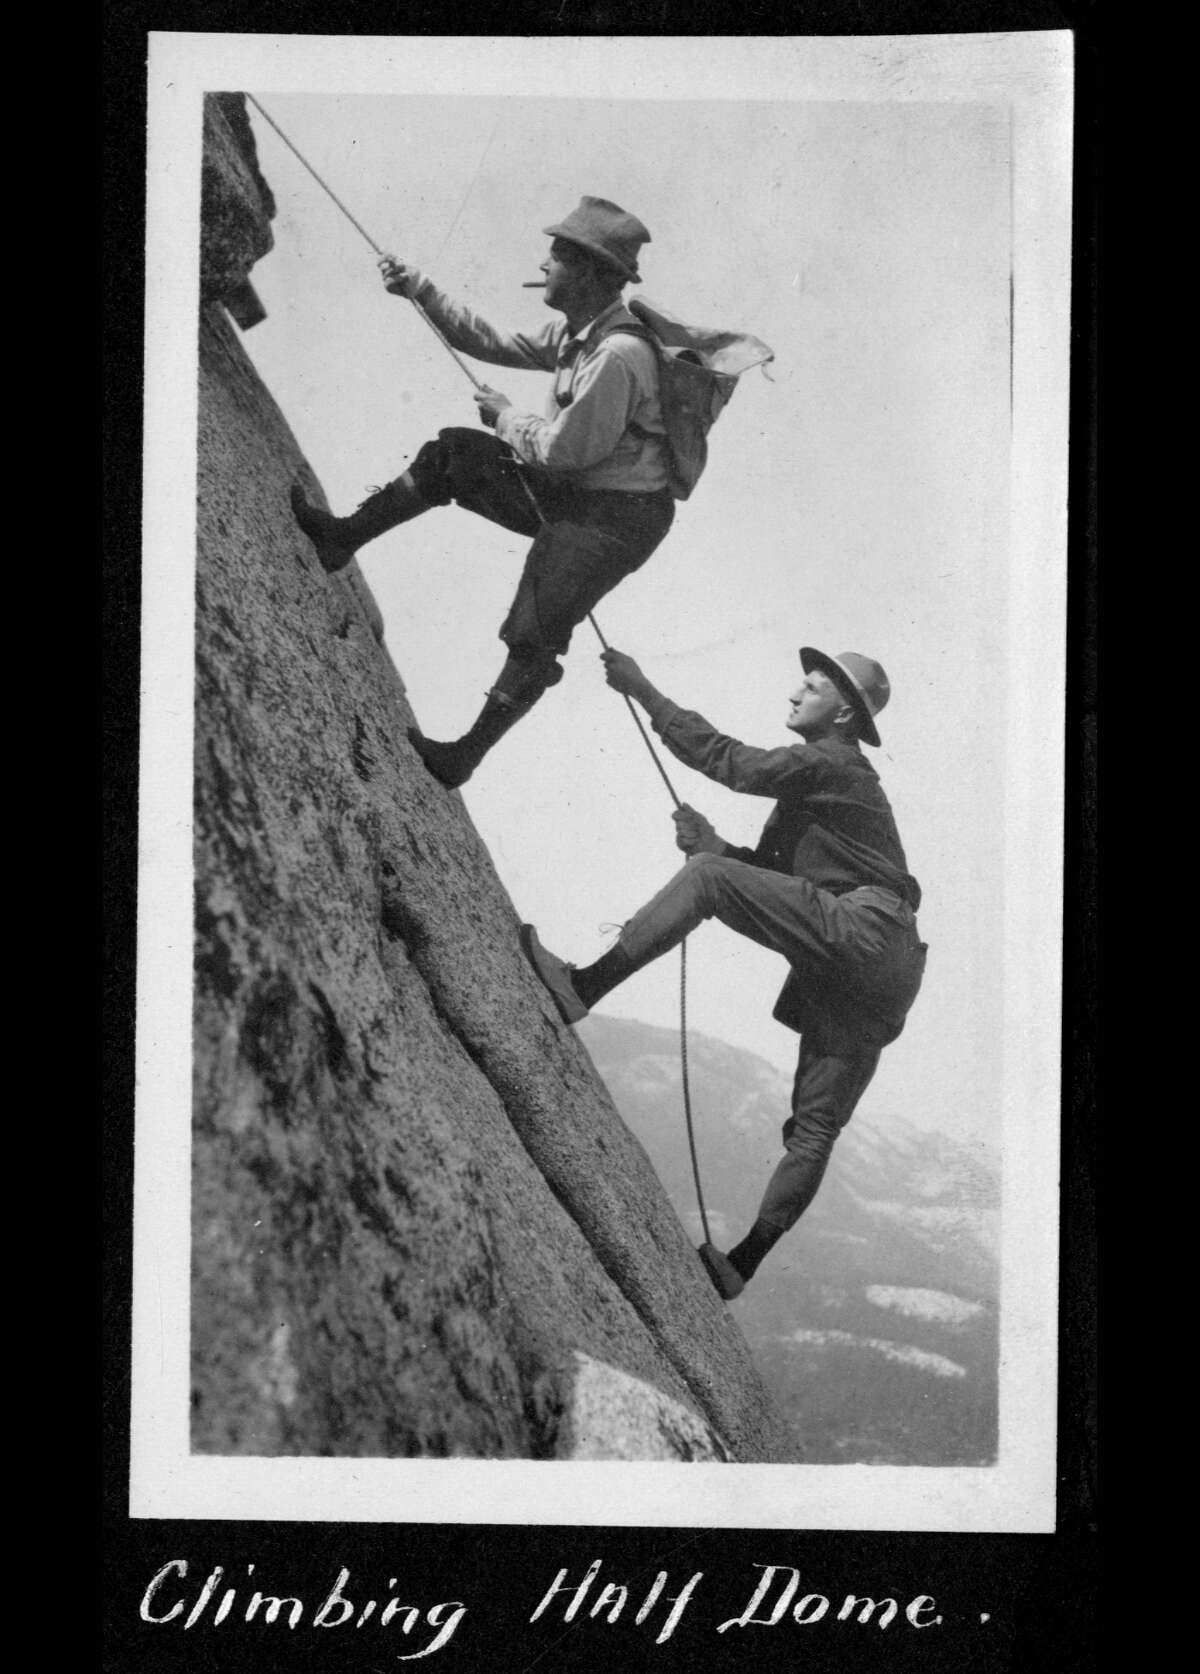 These early climbers on Half Dome were likely attempting this before the installation of climbing cables in 1919, the Yosemite page noted.